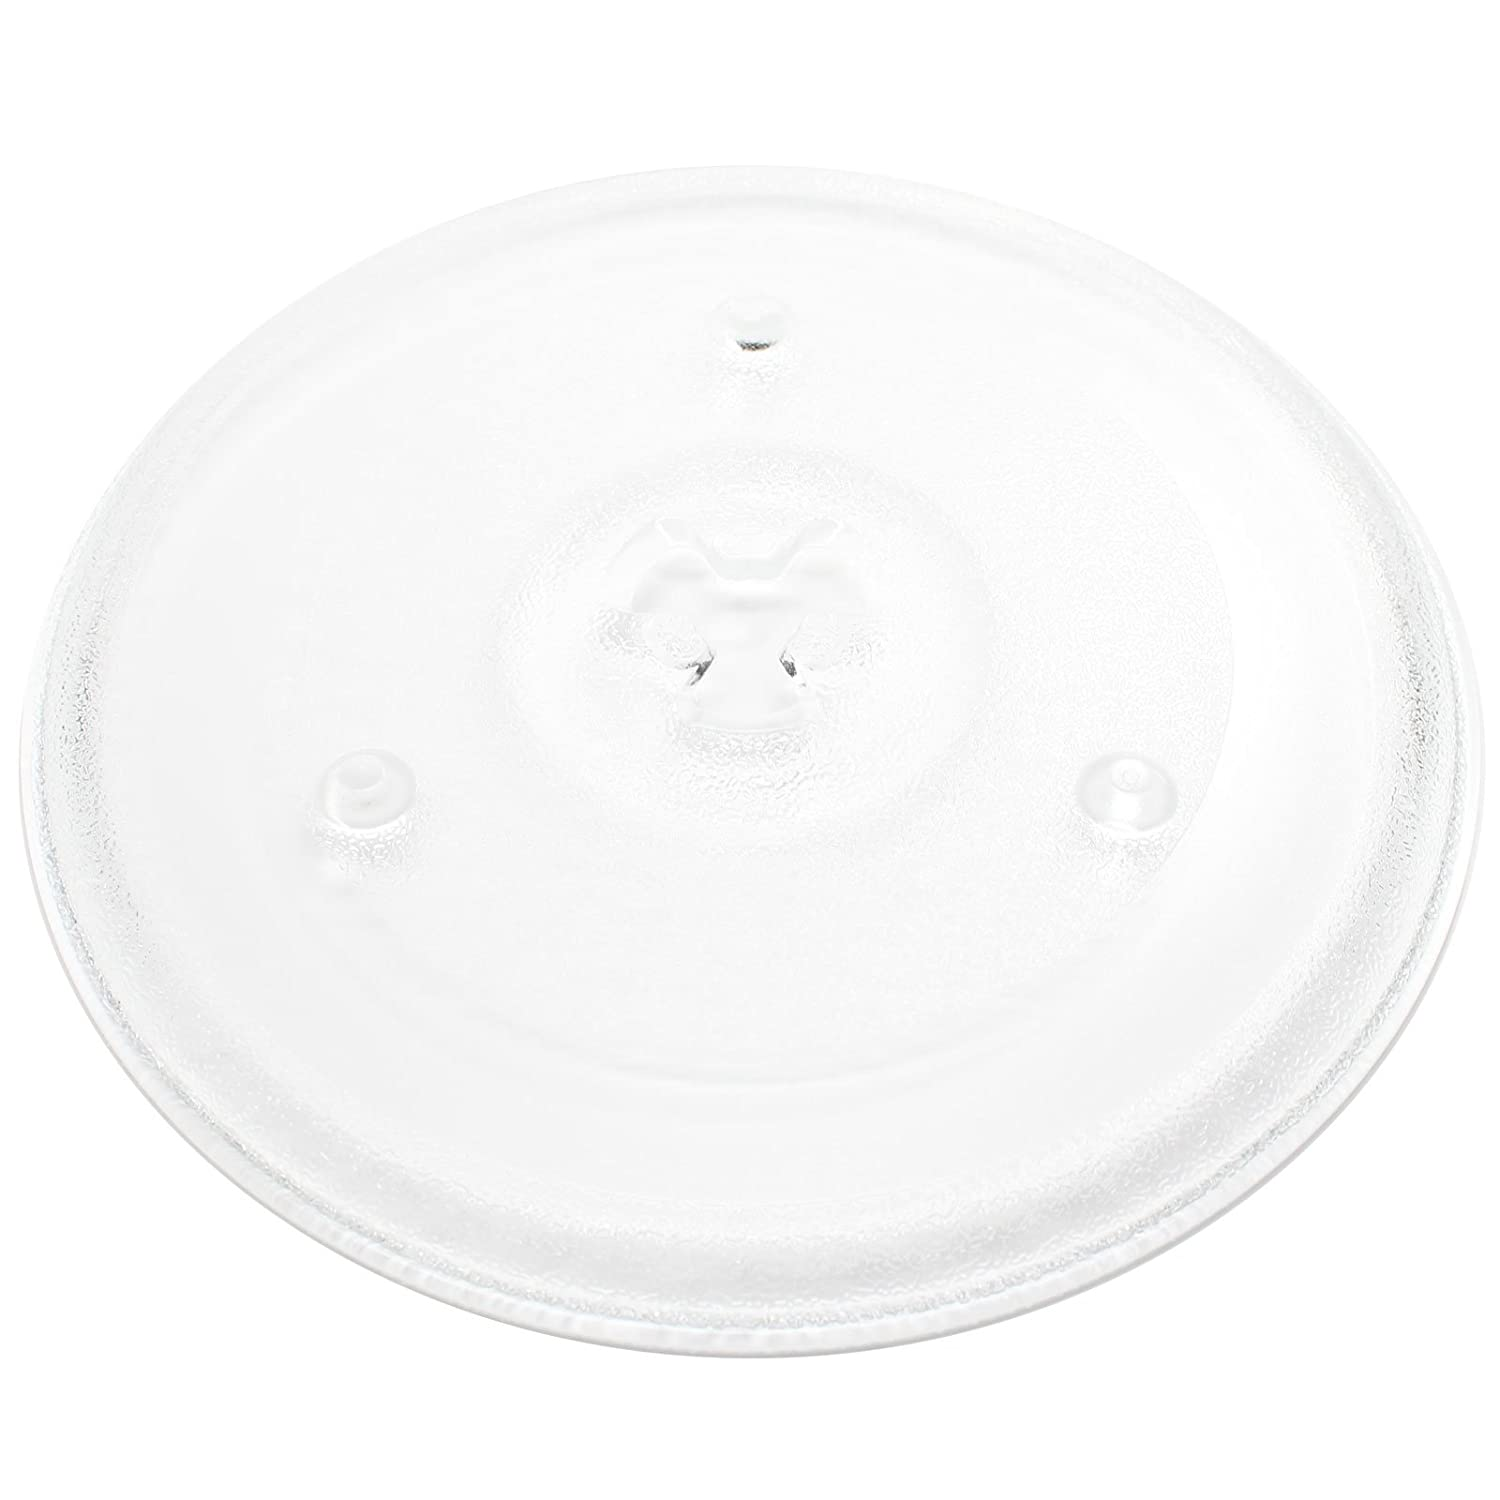 270mm Replacement for Haier HMC935SESS Microwave Glass Plate Compatible with Haier 252100500497 Microwave Glass Turntable Tray 10 1//2